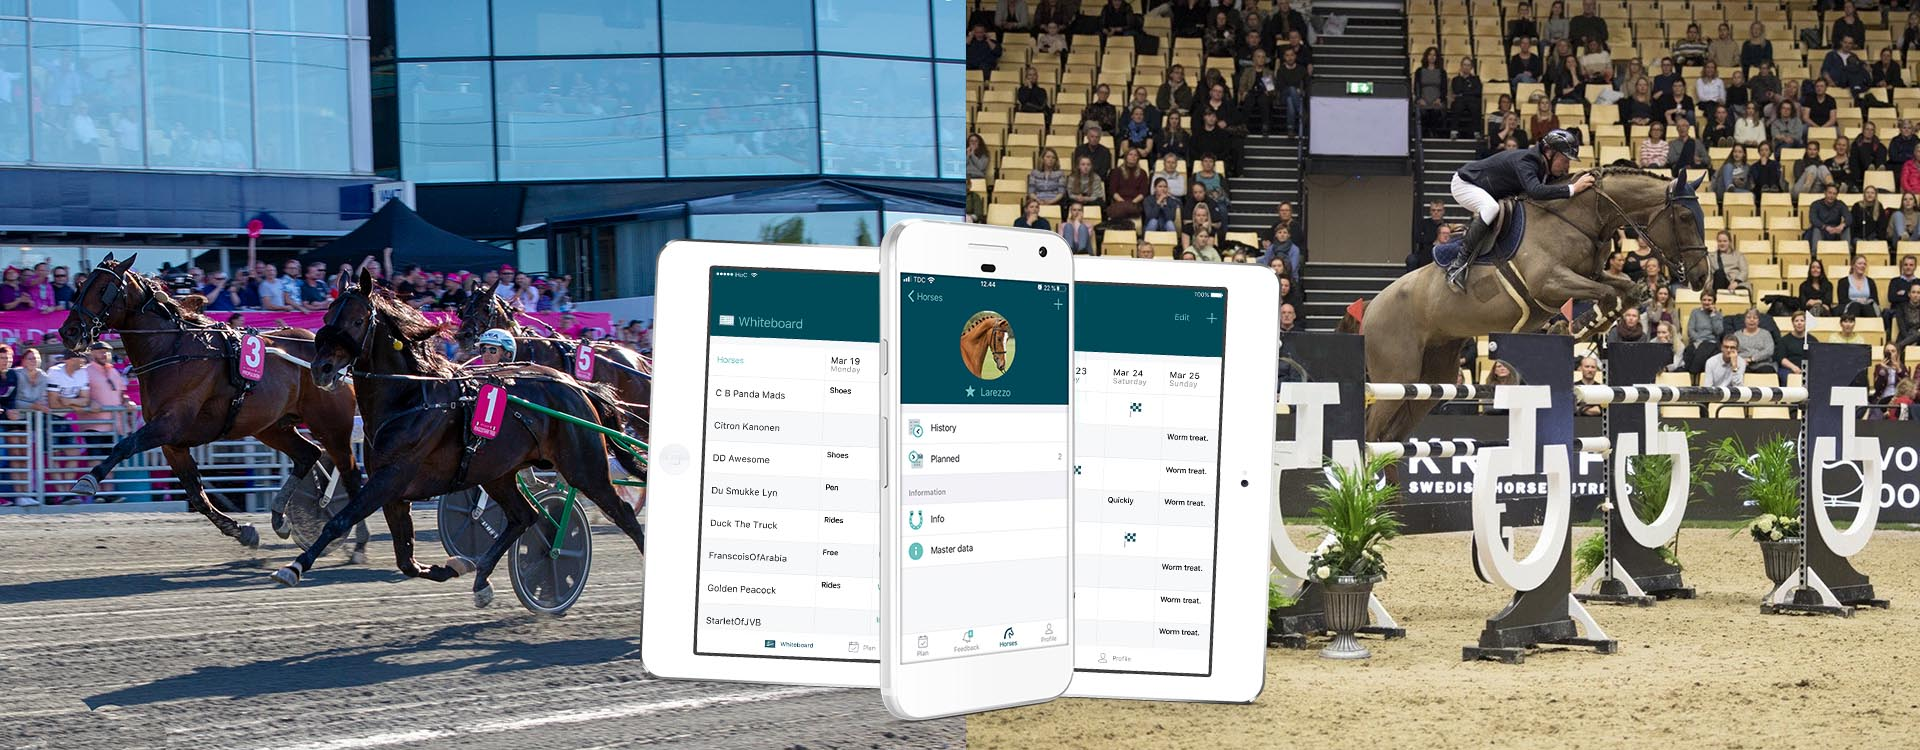 Race and equestrian app